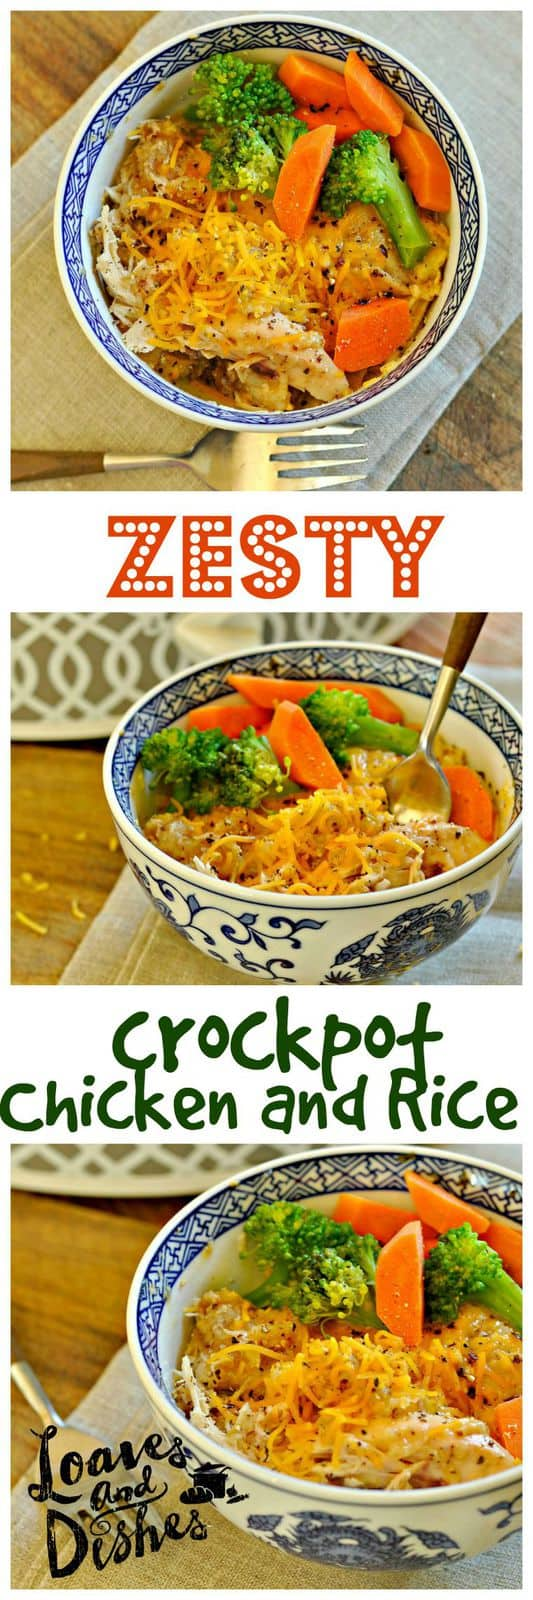 Need a simple weeknight all in one crockpot dinner? Try Zesty Crockpot Chicken and Rice @www.loavesanddishes.net